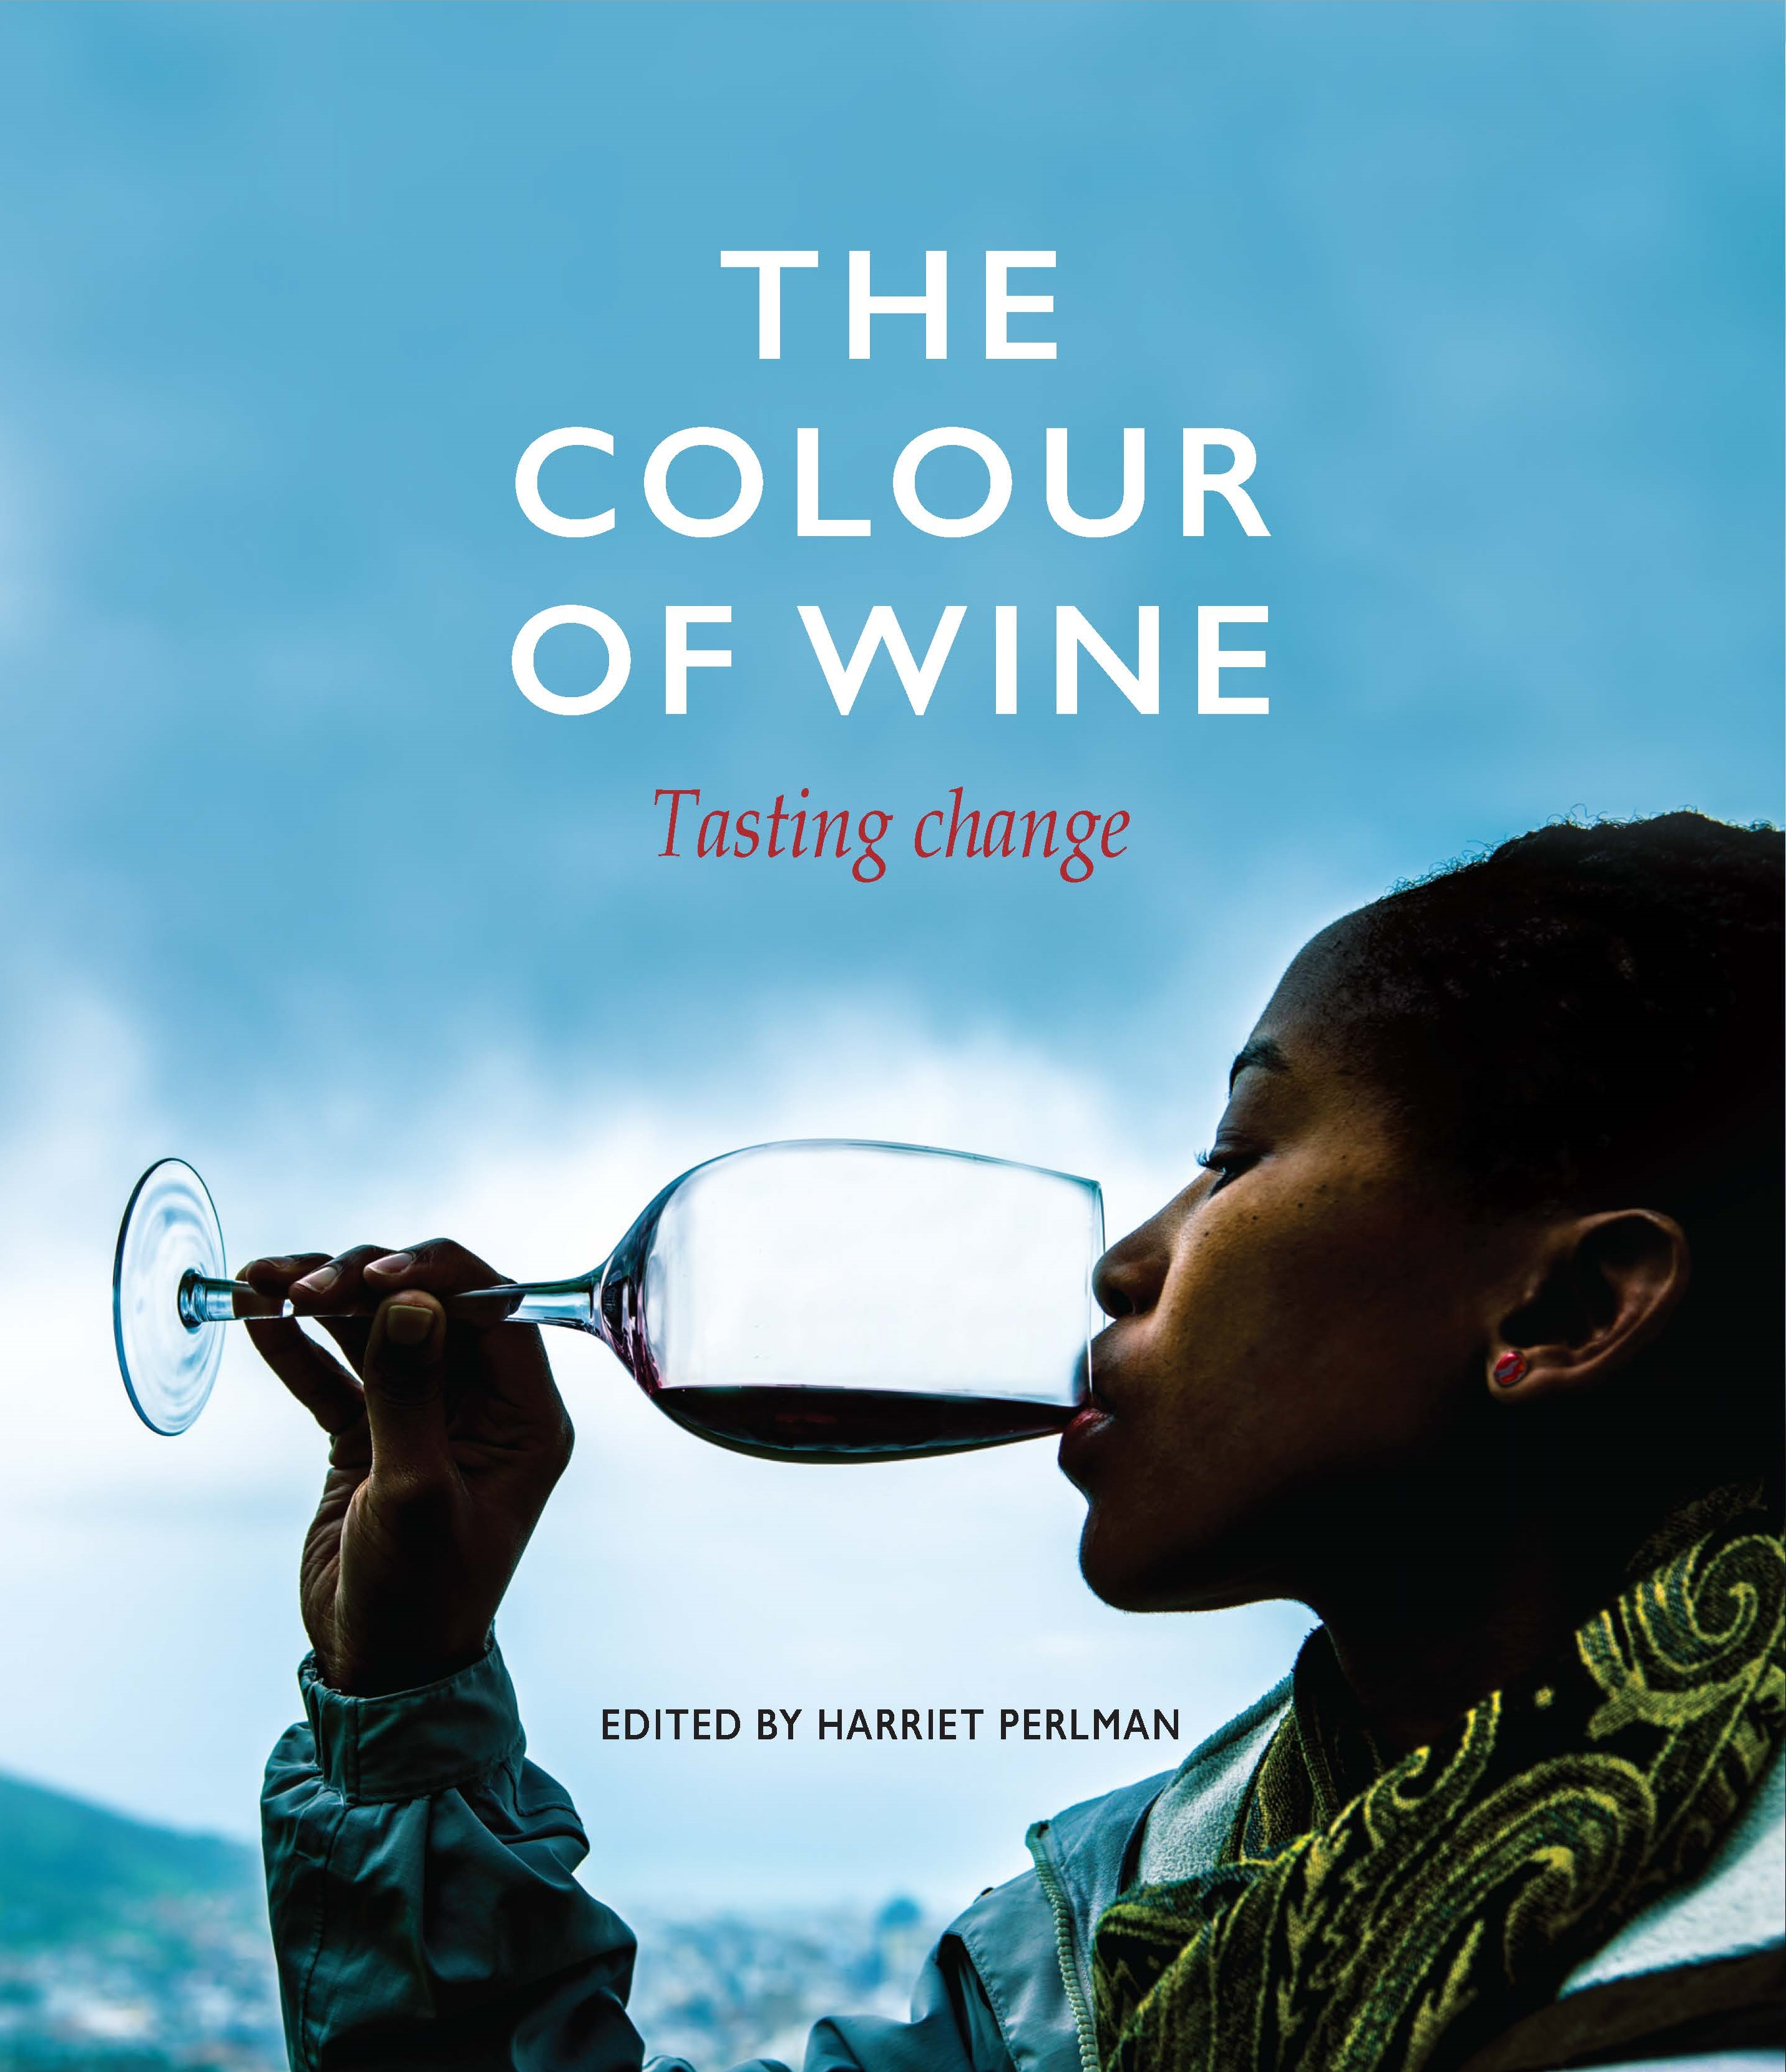 The Colour of Wine